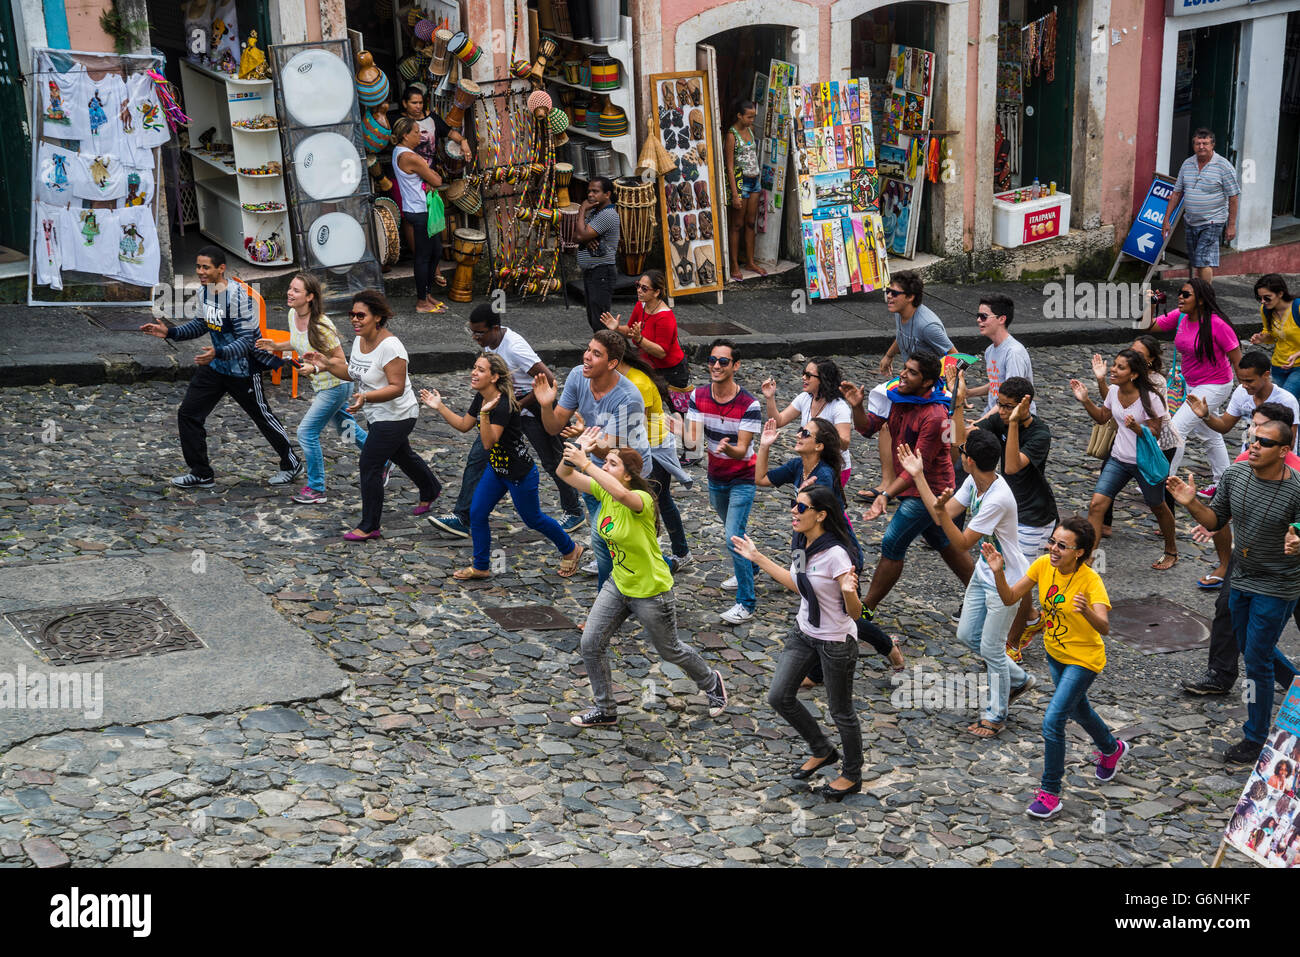 Group of student protesters demonstrating at Largo Pelourinho, Salvador, Bahia, Brazil - Stock Image